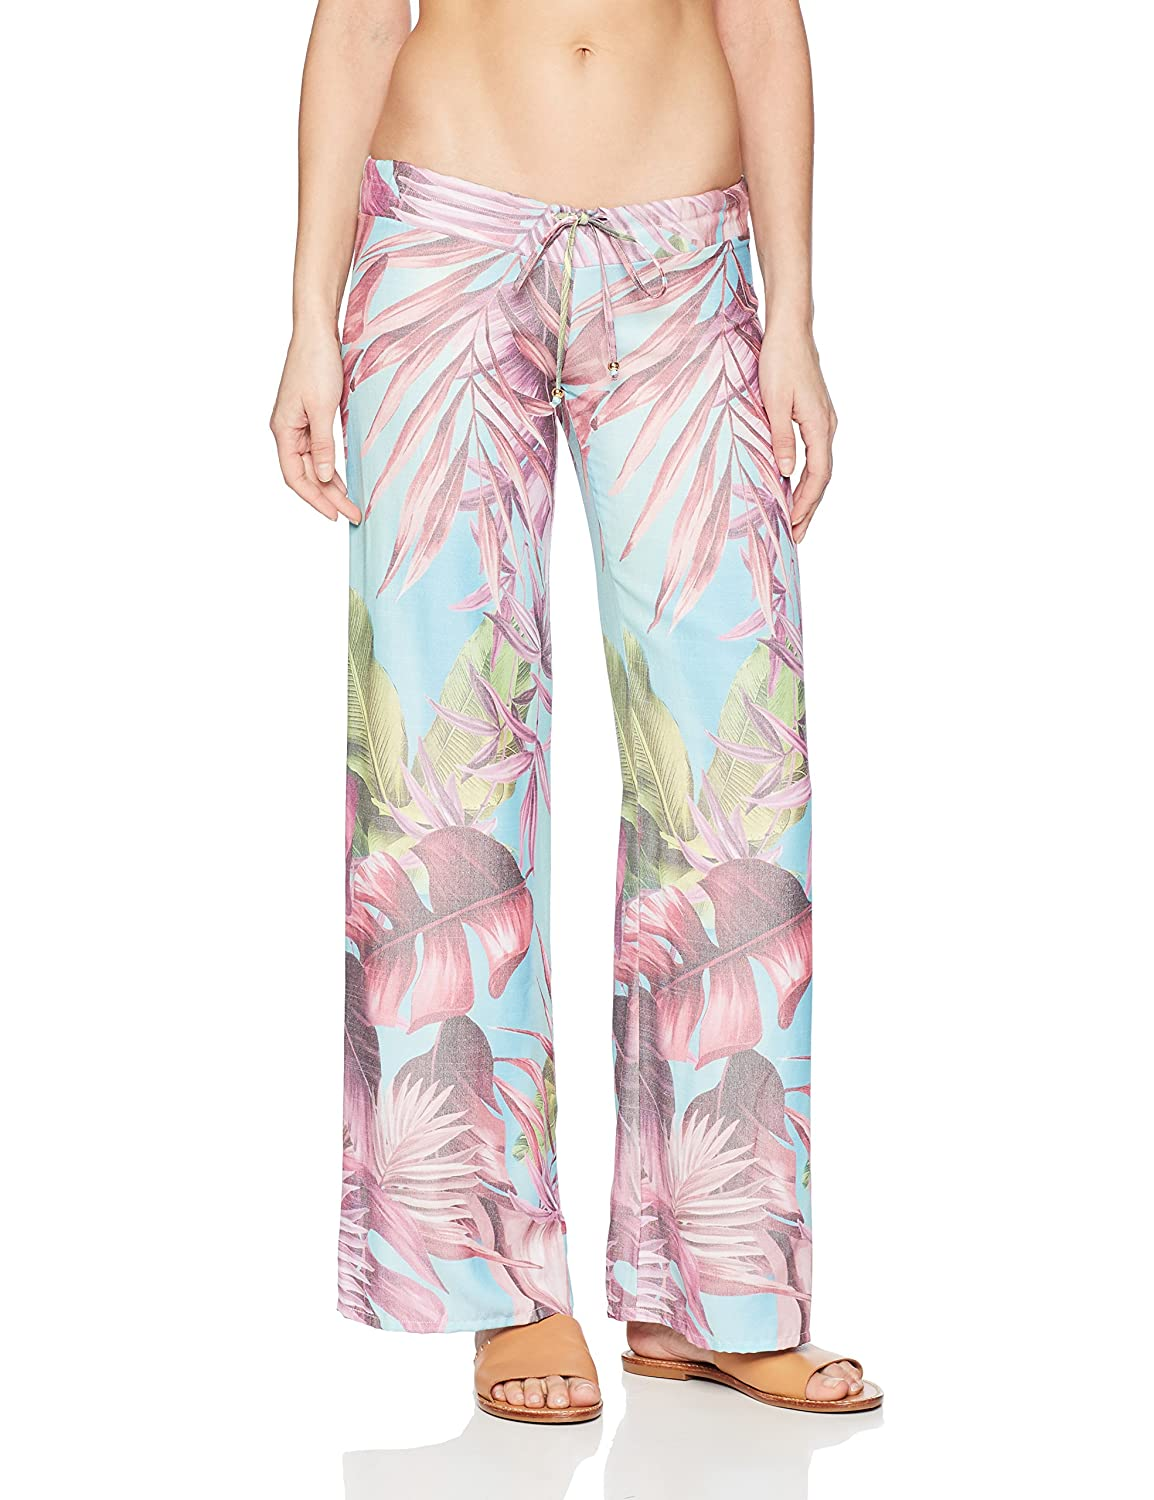 PilyQ Women's Tropical Palm Print Lounge Pant Cover up Swimsuit